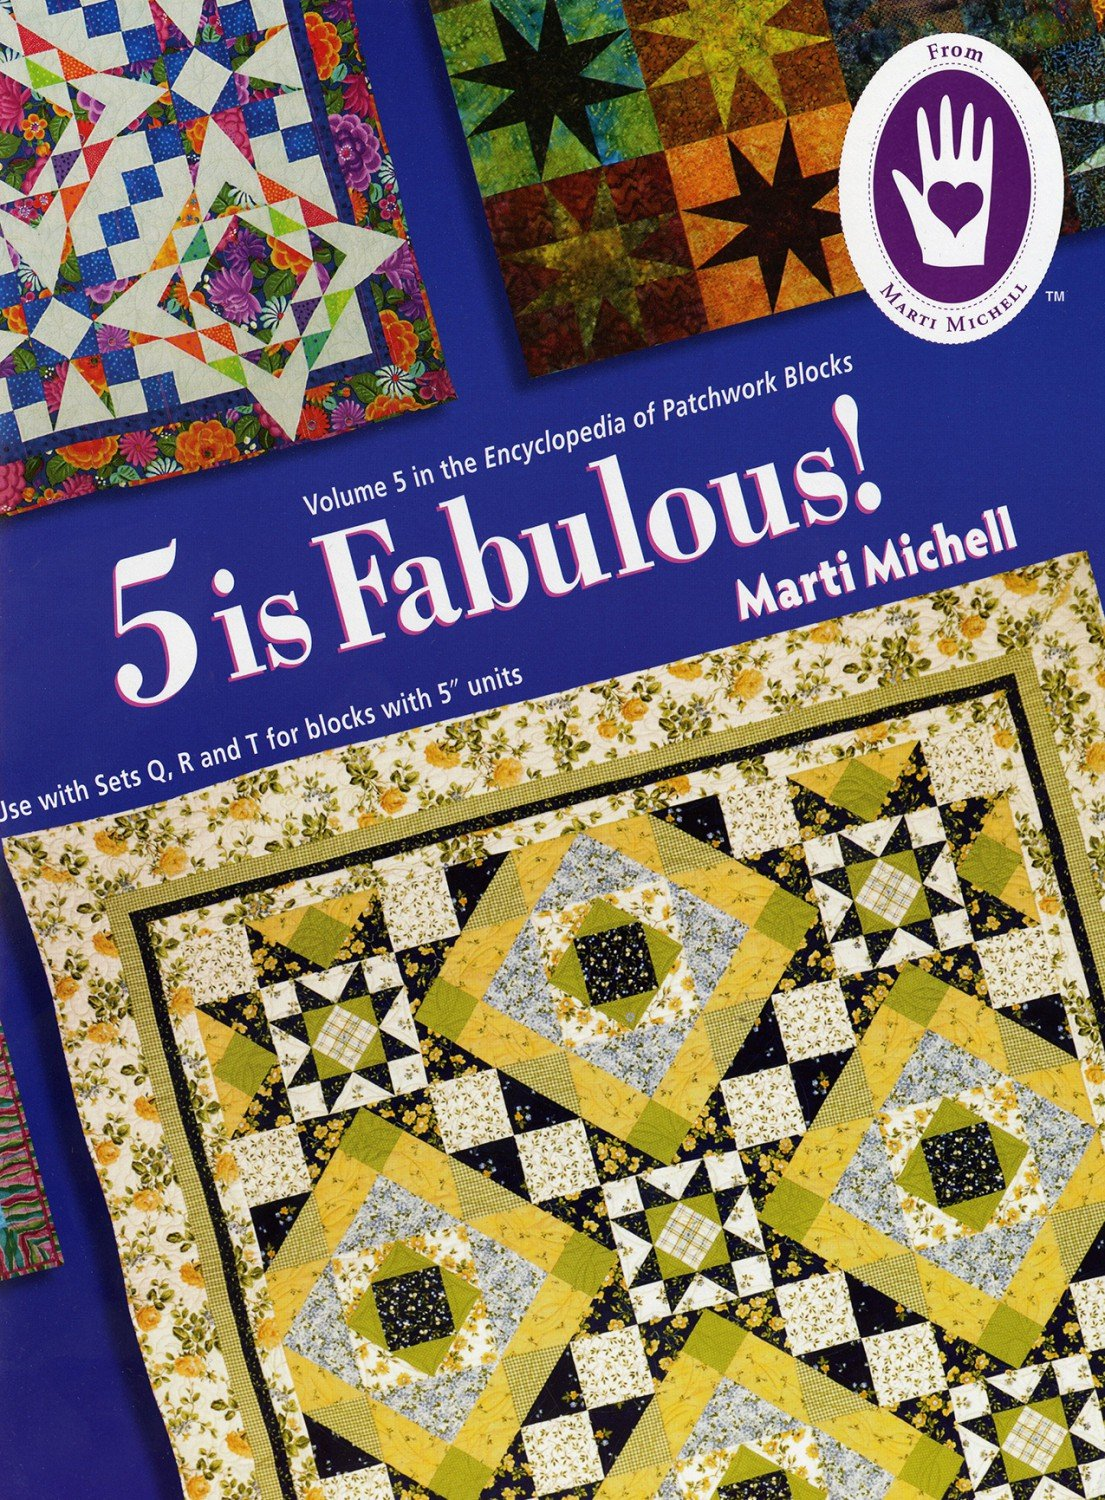 Marti Michell - Volume 5 - 5 Is Fabulous The Encyclopedia of Patchwork Blocks - MM8229